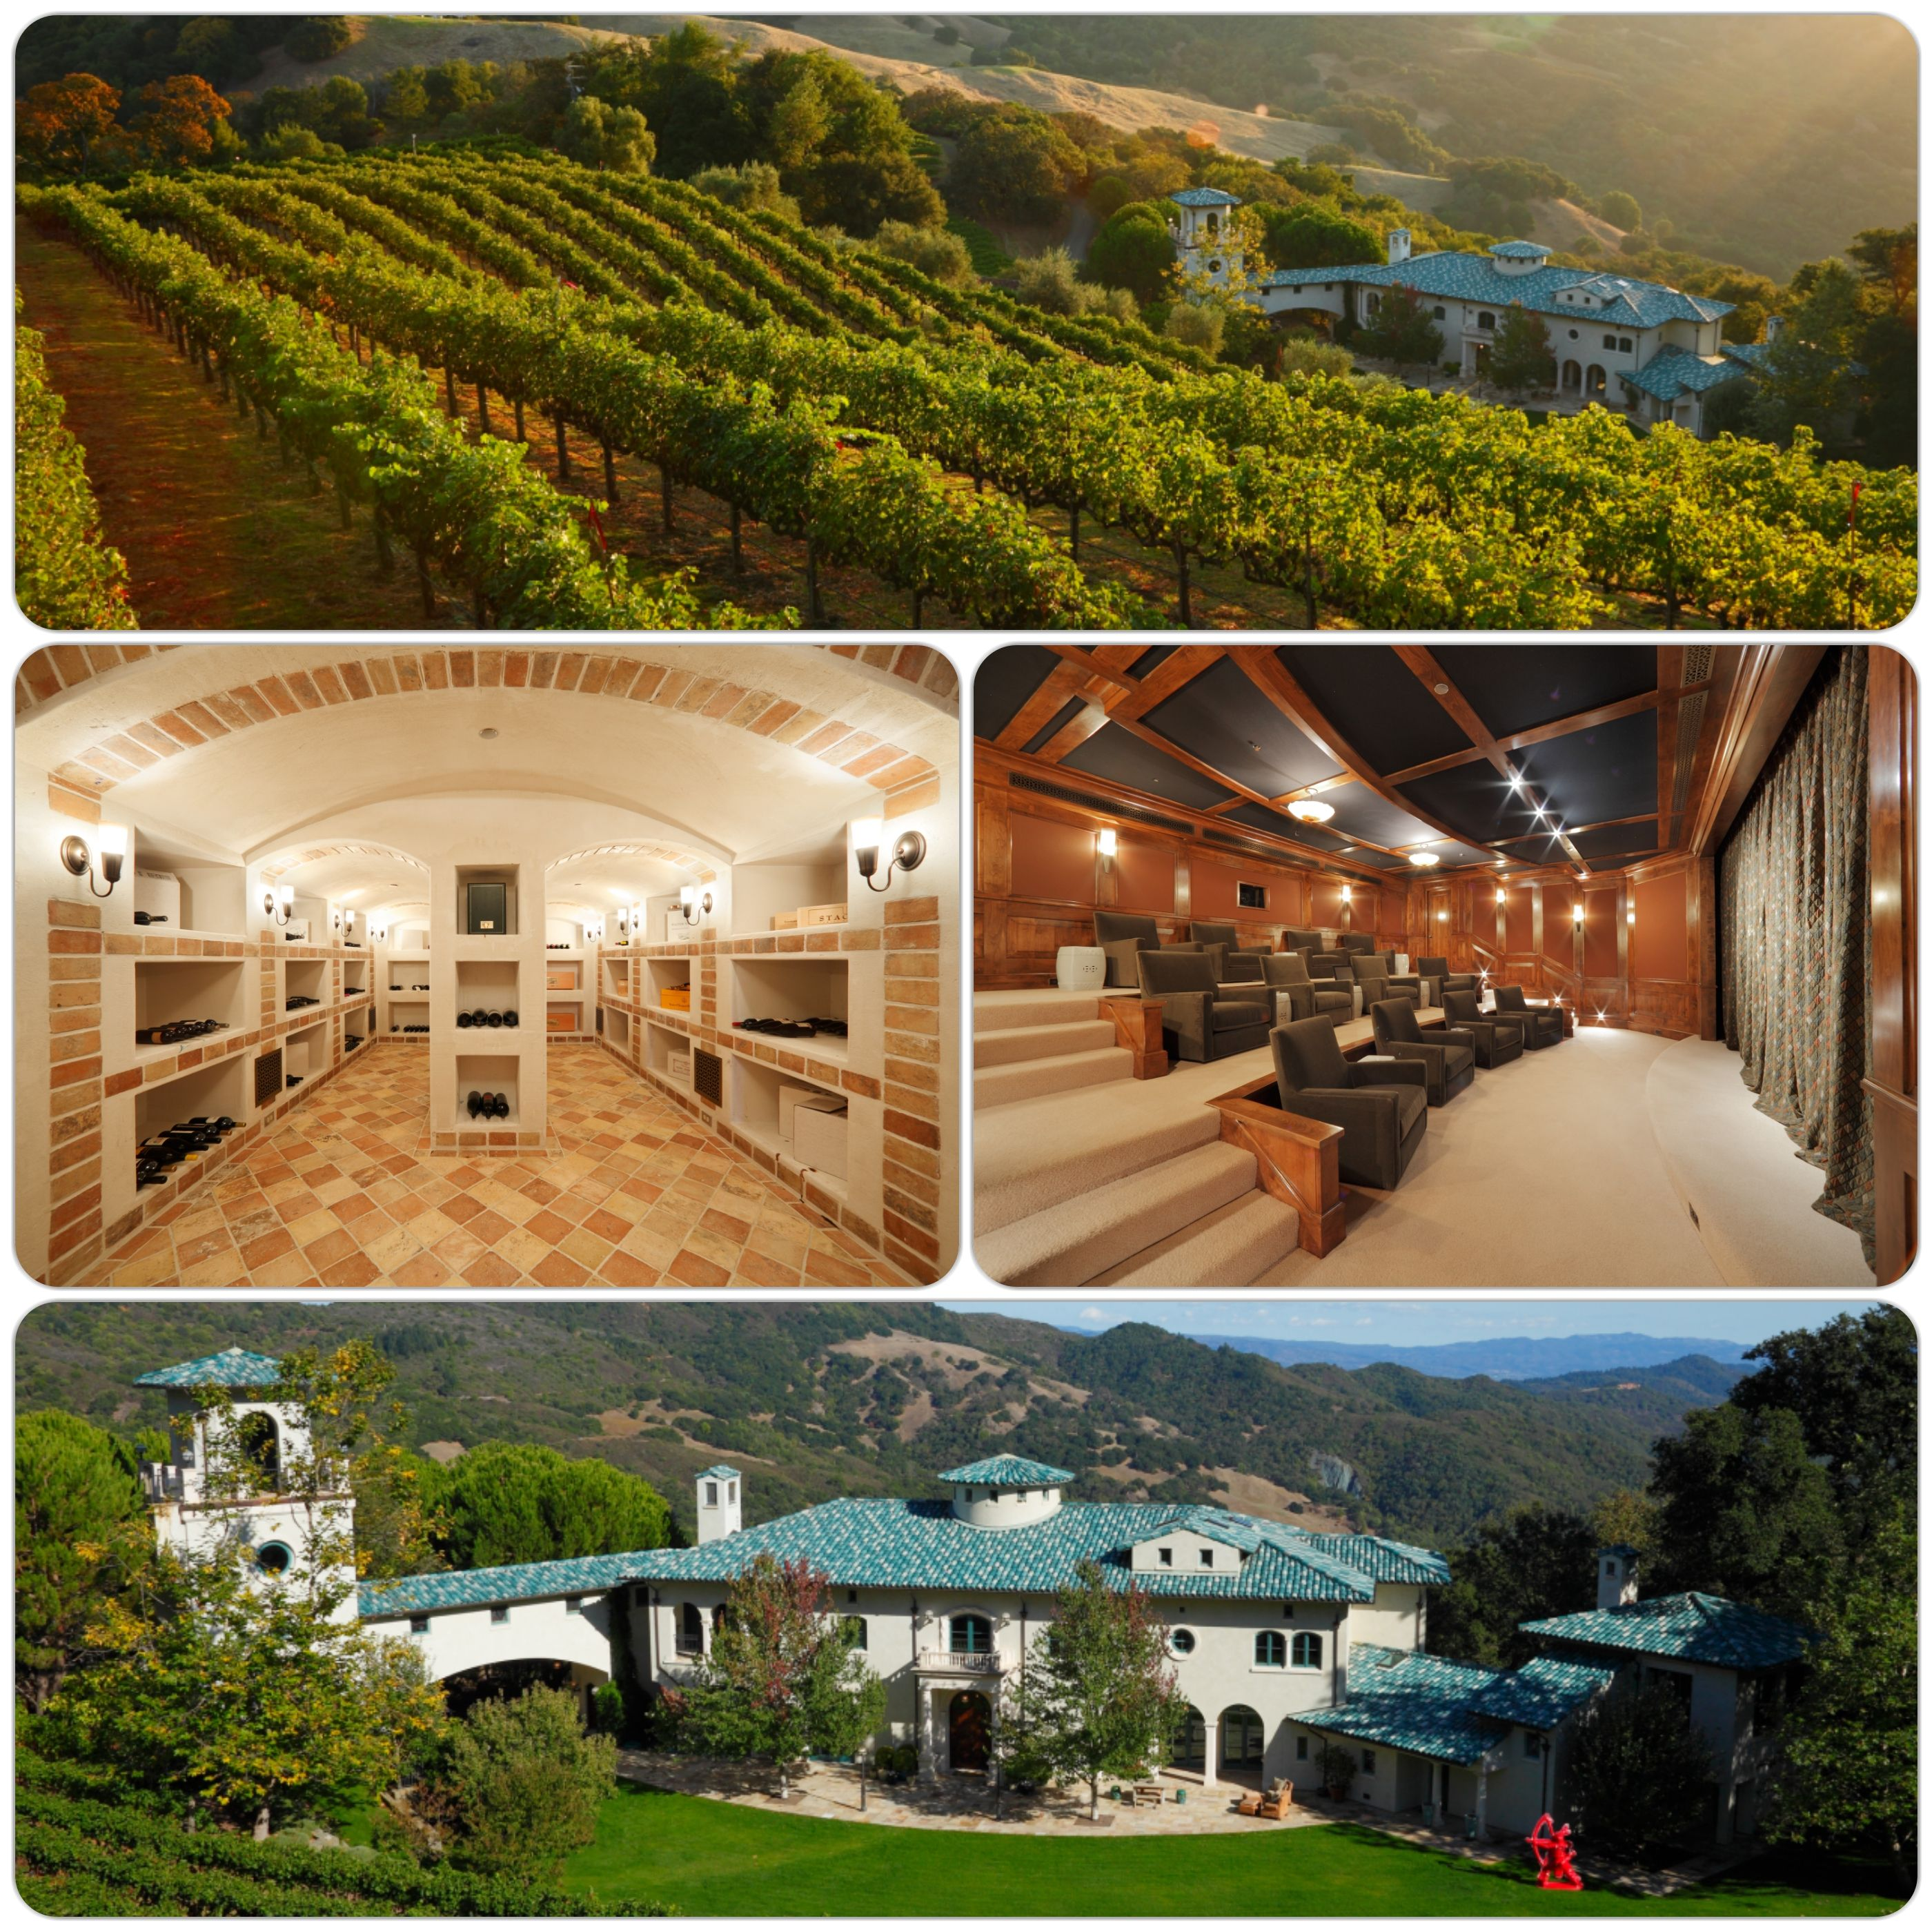 Robin Williams Gets Serious About Selling $30 Million Napa Valley Ranch